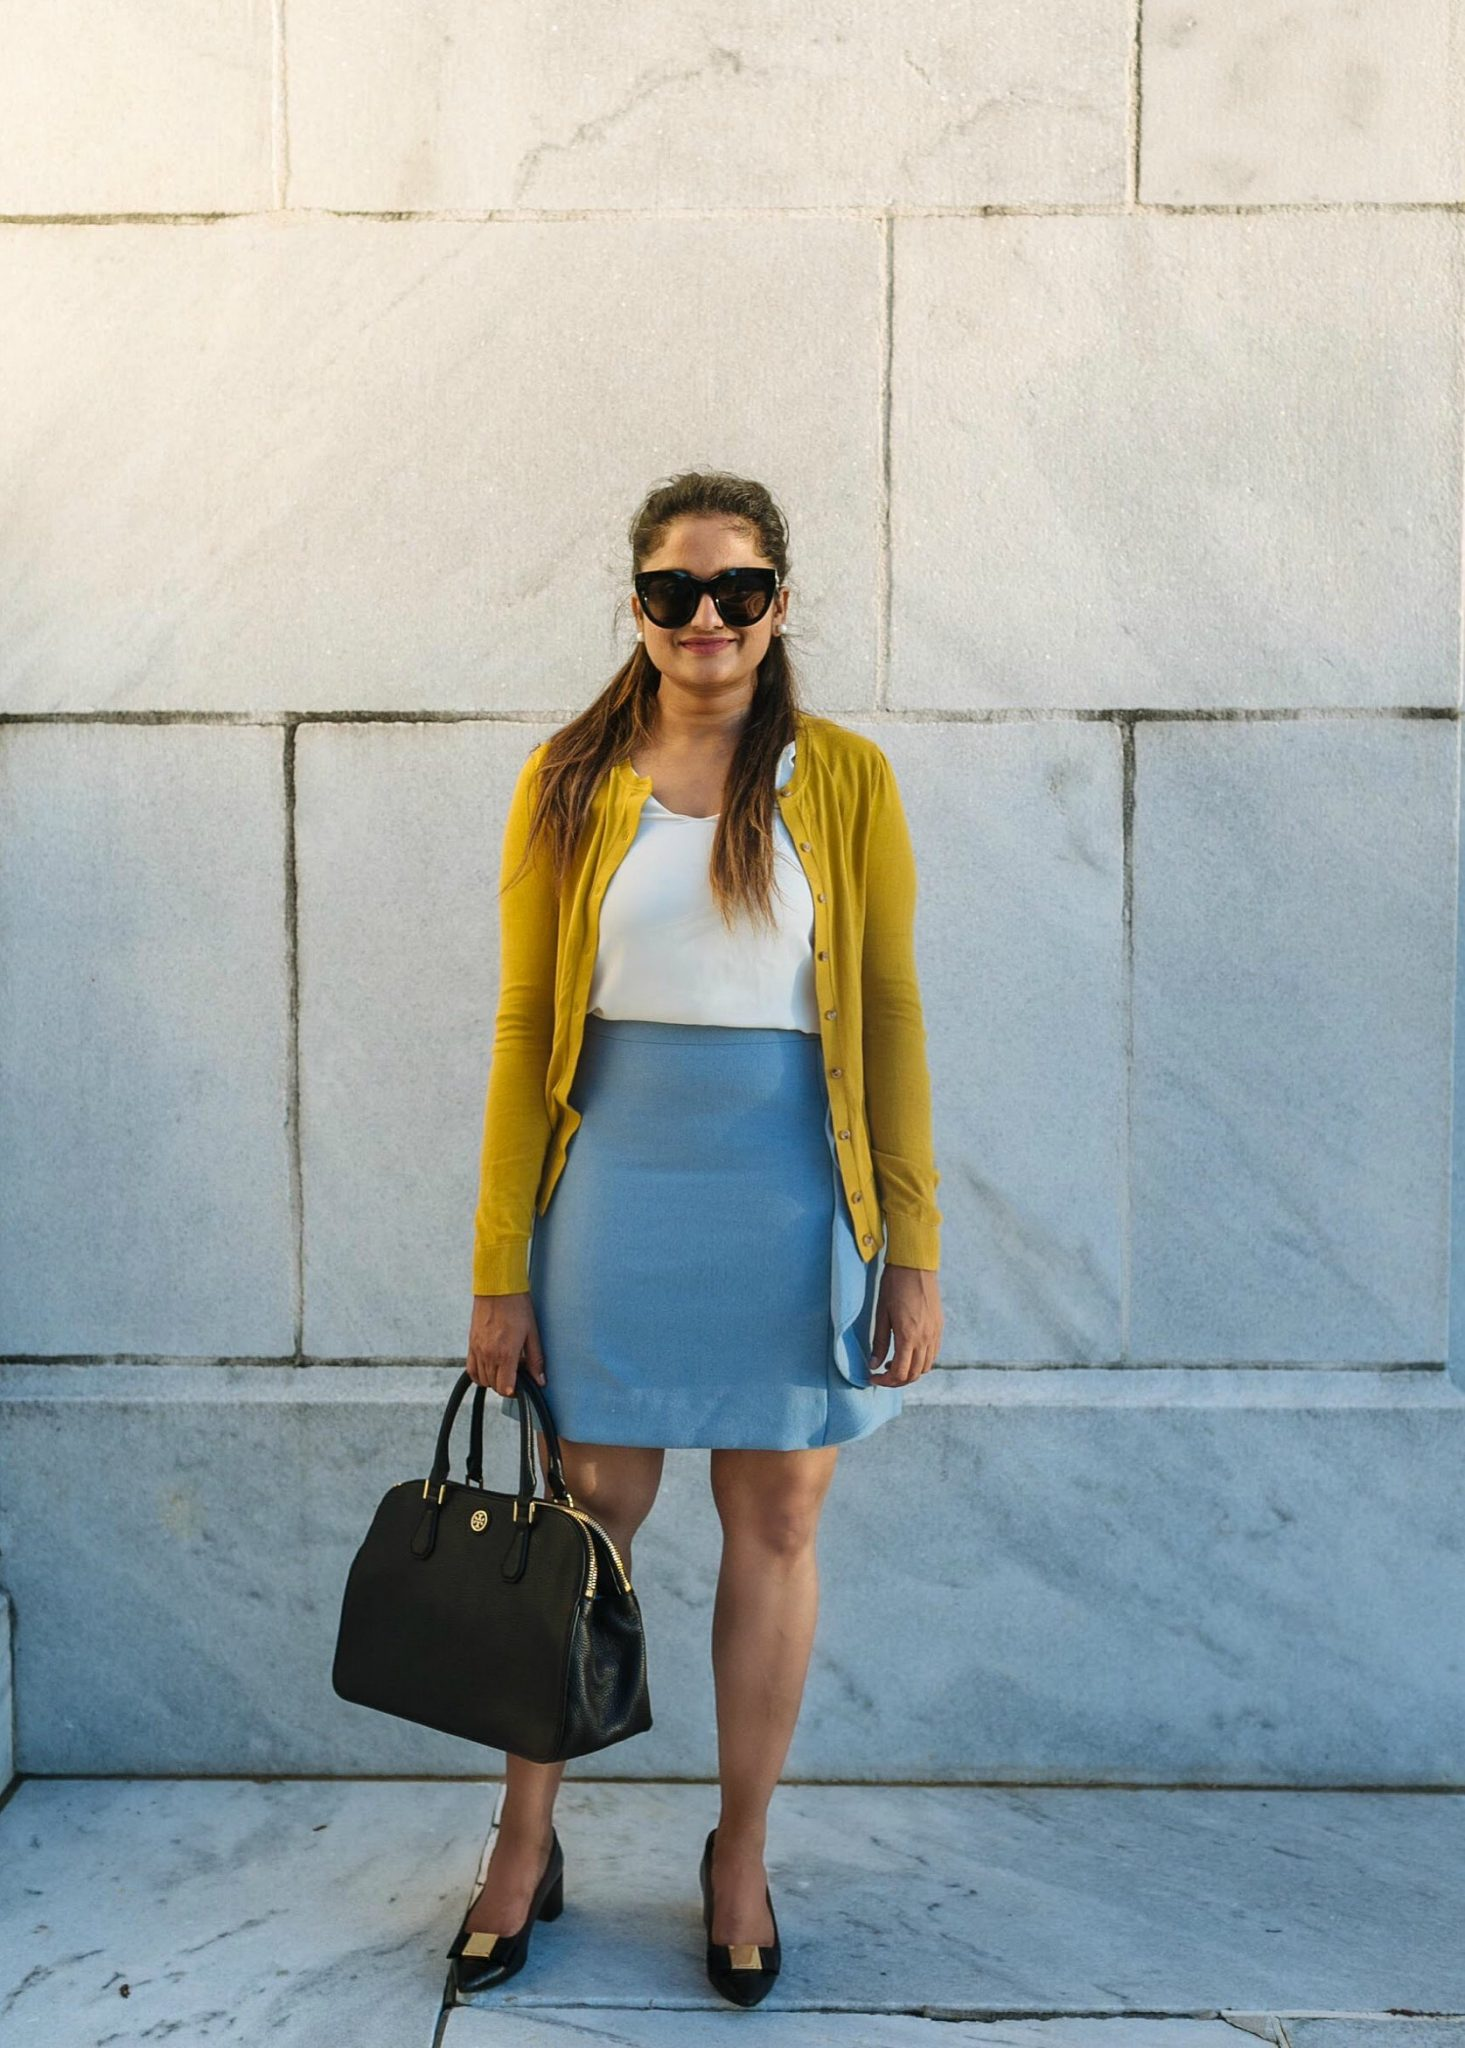 How to wear yellow cardigan to work | 20 Outfit Fall colorful capsule wardrobe |Colorful Fall Work Outfits featured by popular Ohio modest fashion blogger, Dreaming Loud